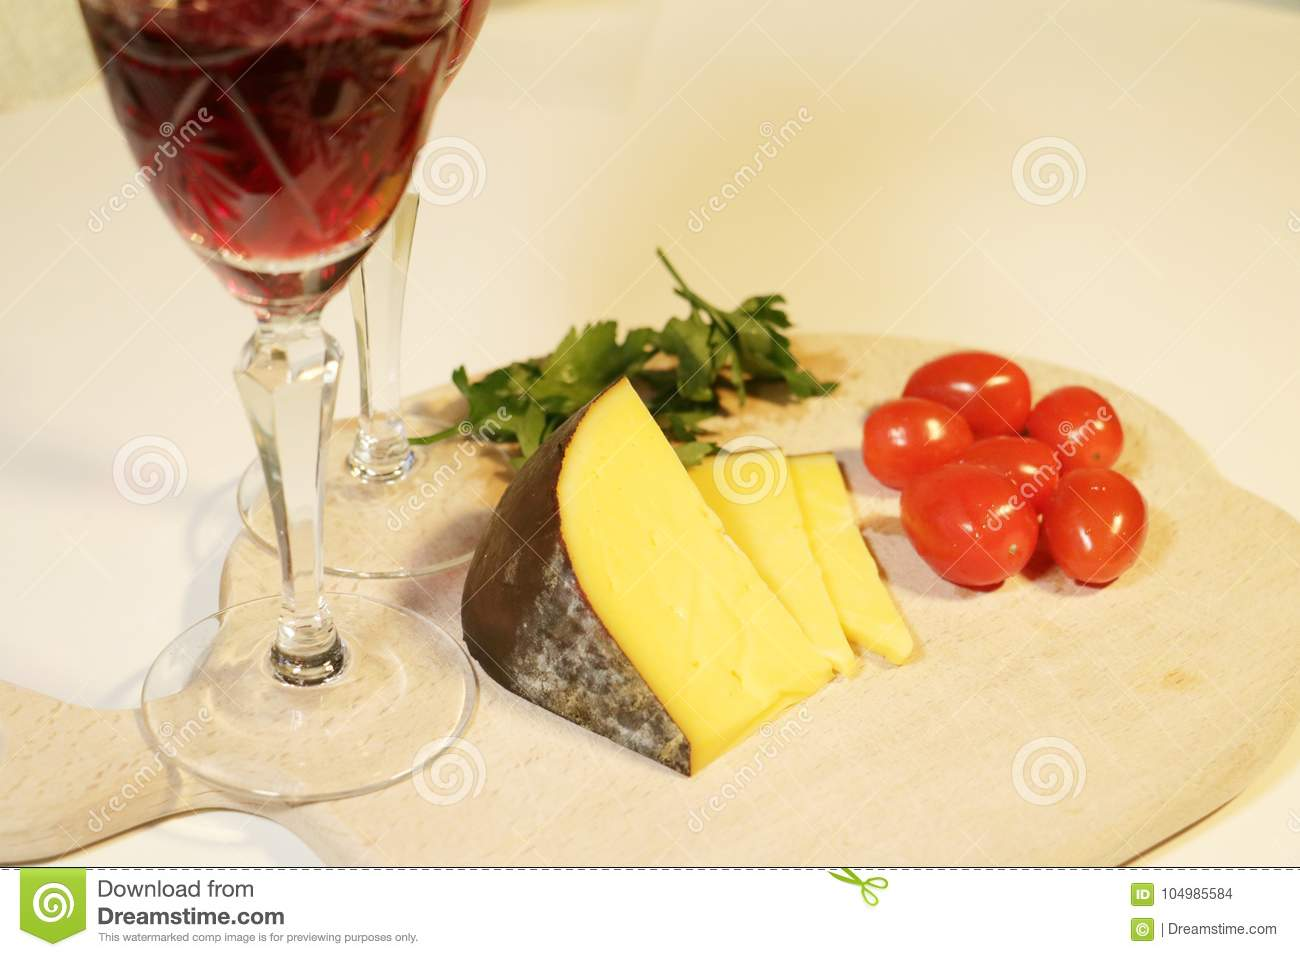 Sliced yellow cheese and small red tomatoes